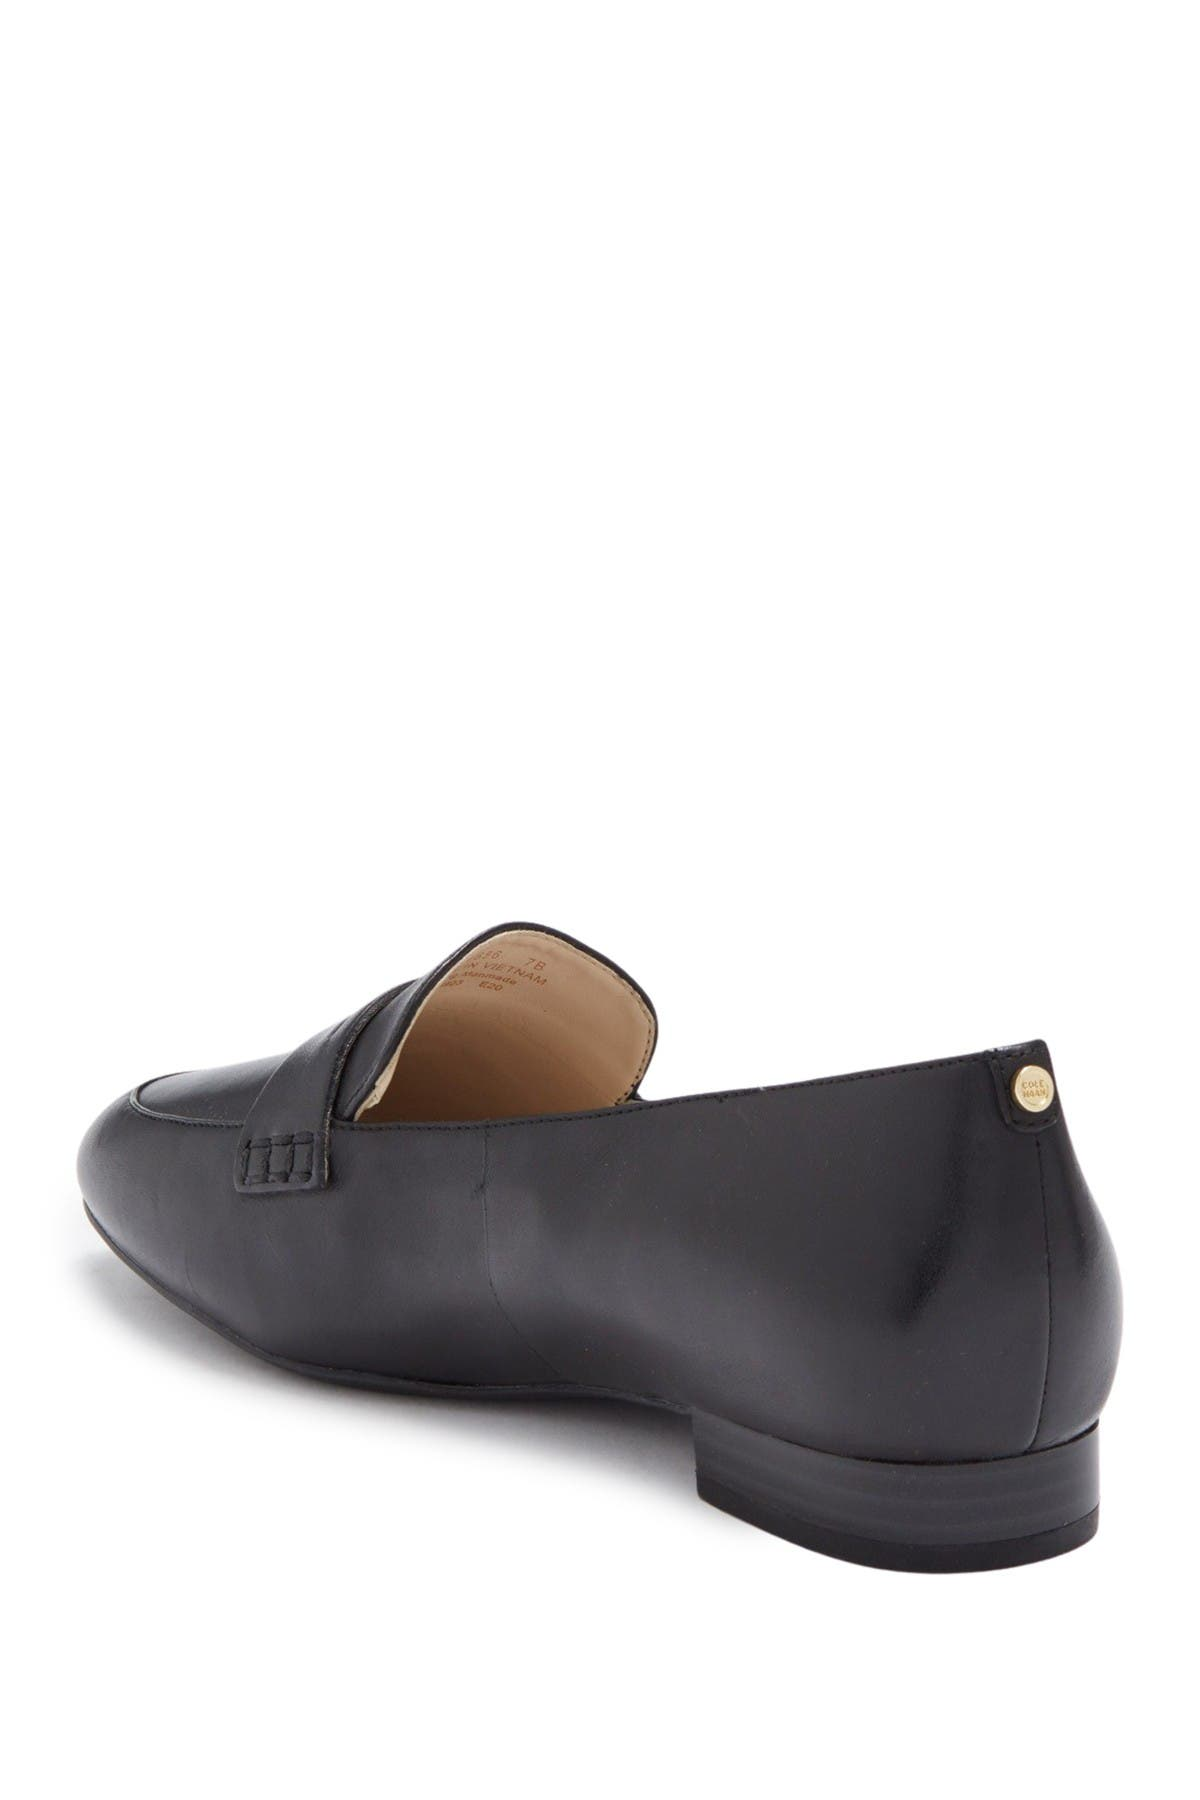 Image of Cole Haan The Go-To Pearson Loafer